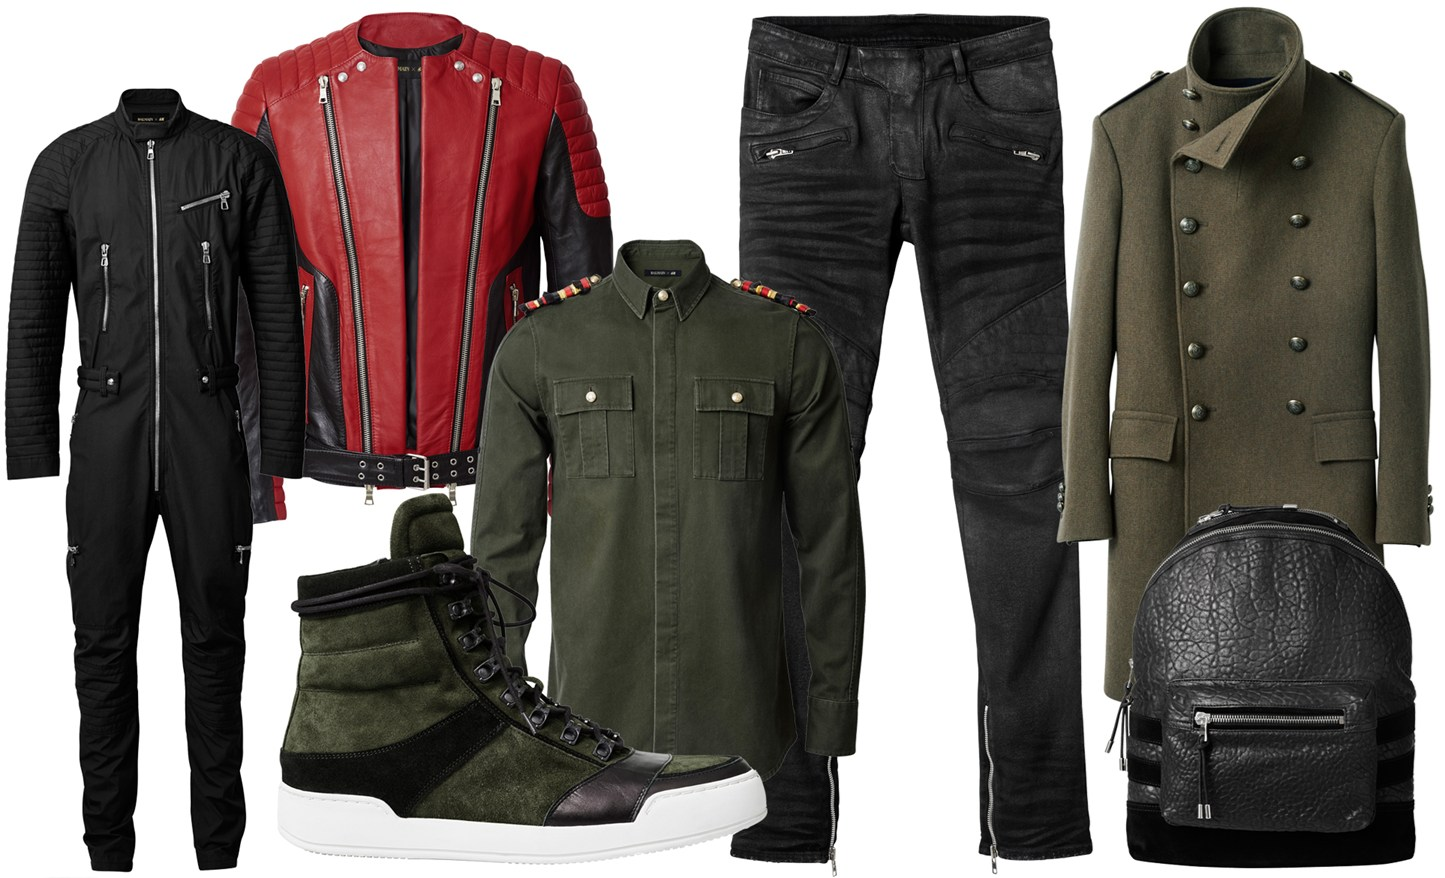 The Balmain x H&M Menswear Collection - an ode to Biker Heritage